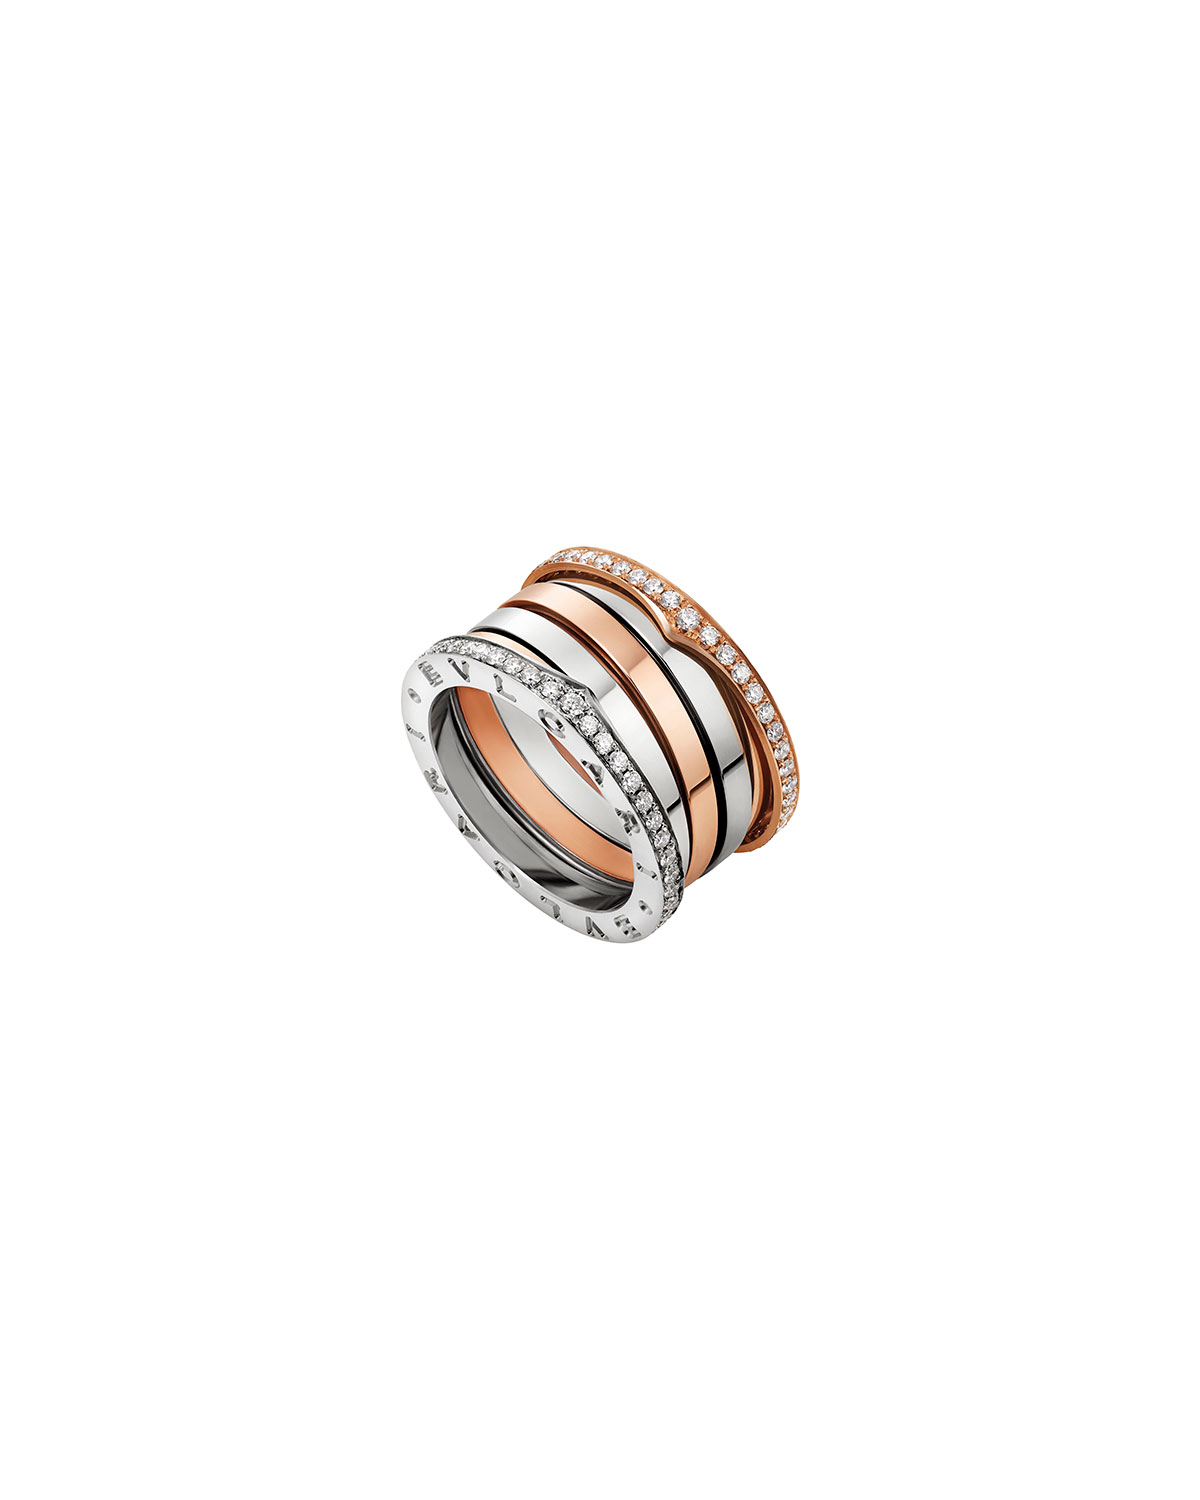 B.zero1 Labyrinth 18k White and Rose Gold Ring with Diamonds